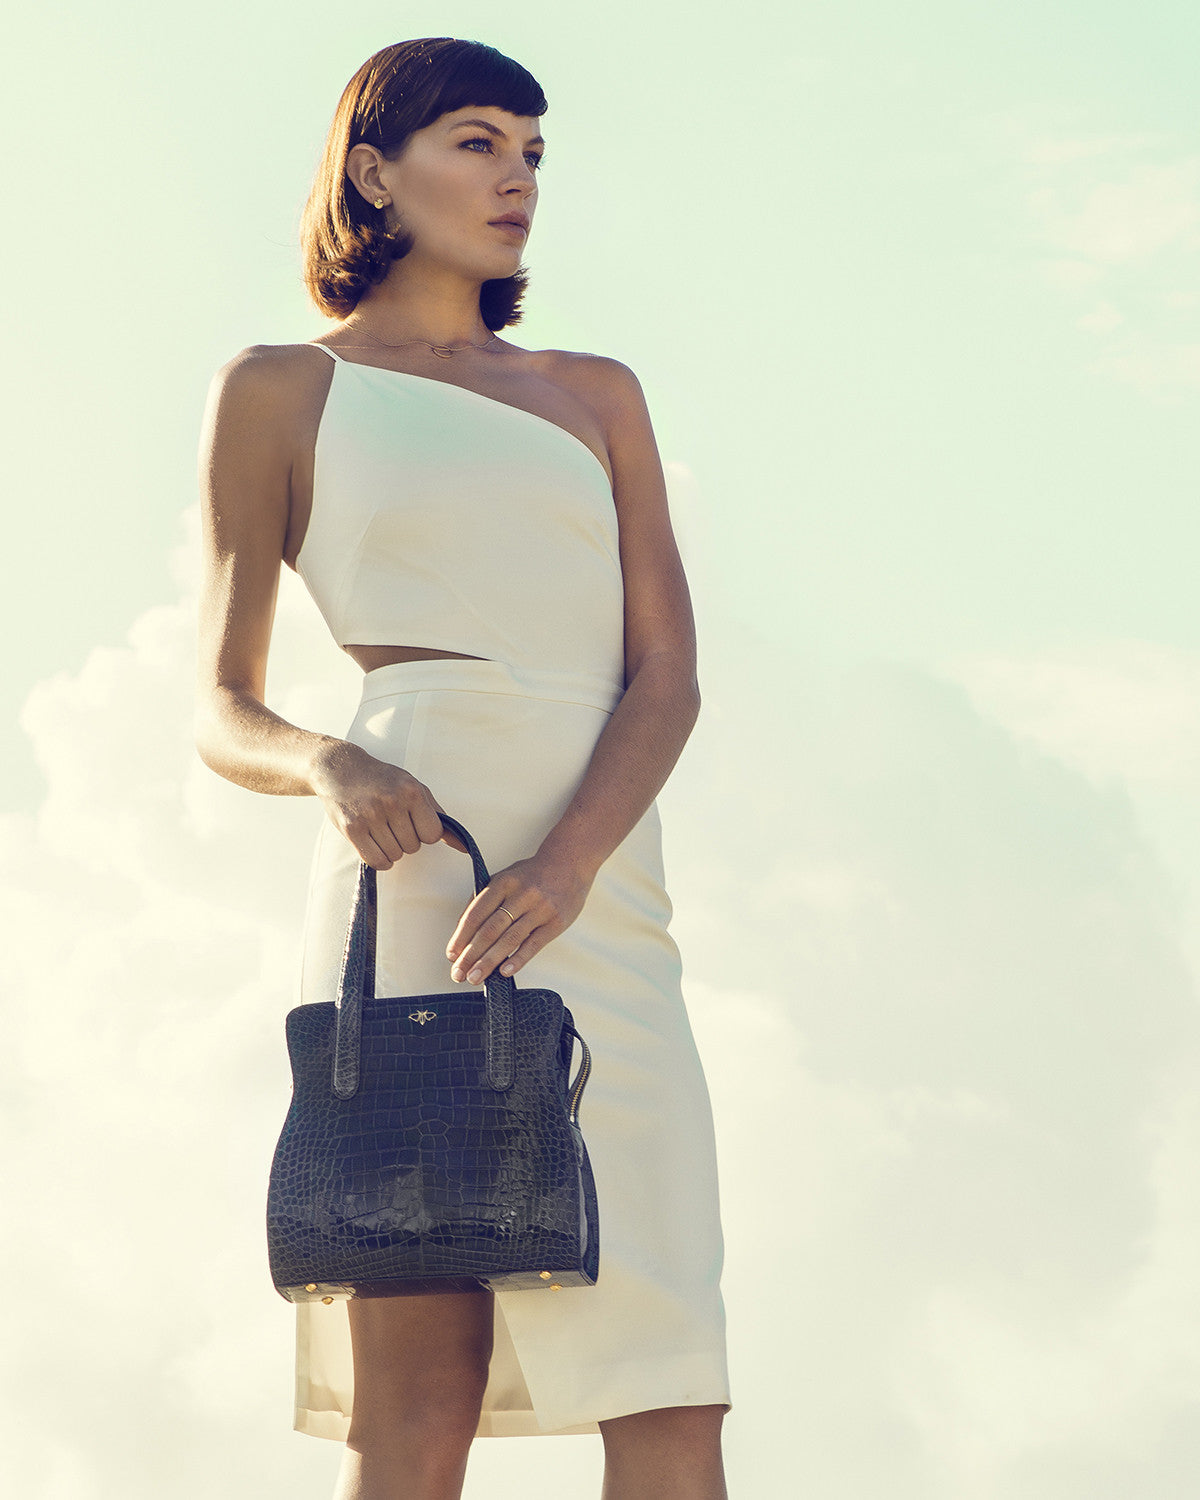 YB ADAM S TOTE Genuine American Alligator Charcoal Grey Model White Elegan Dress Big Sky Clouds Background